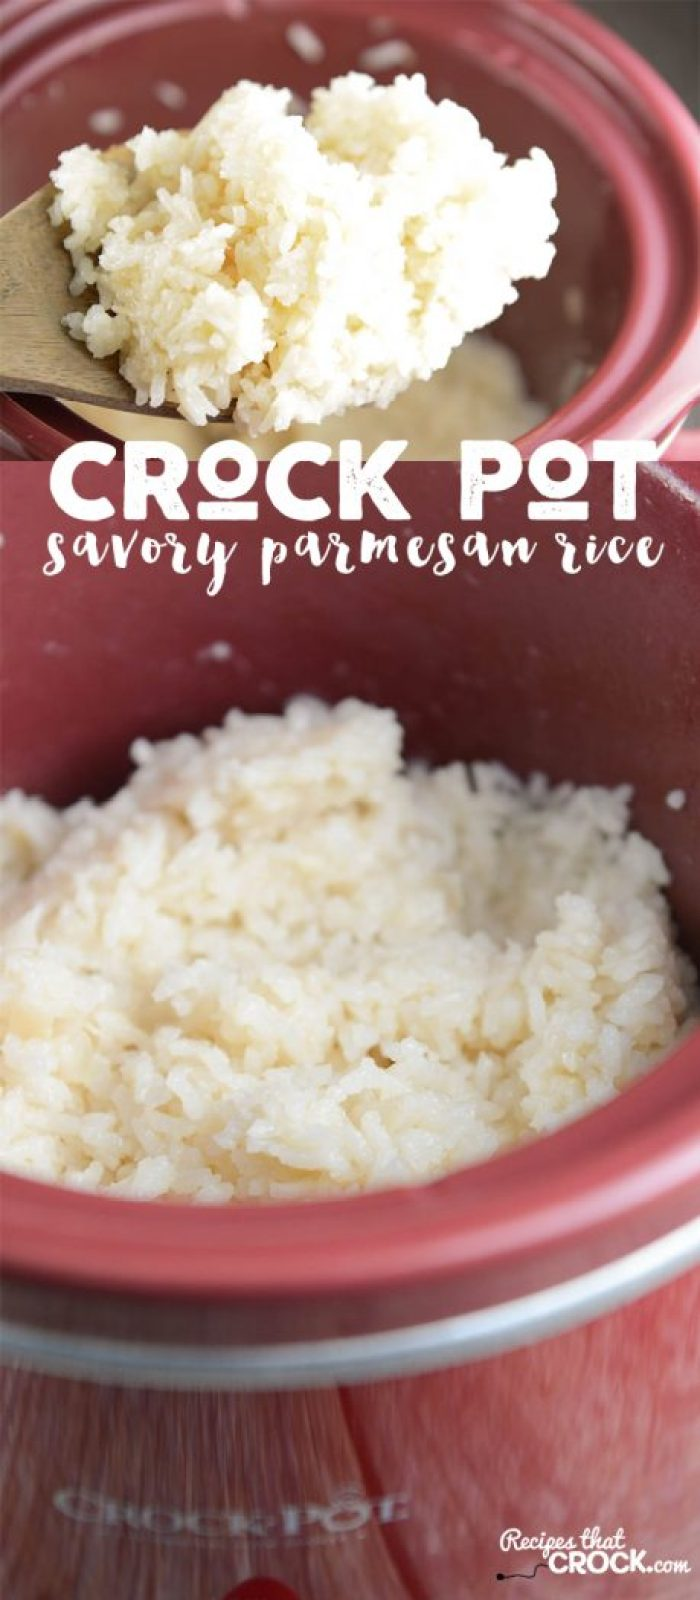 This Crock Pot Savory Parmesan Rice Recipe is a family favorite! We love this slow cooker side dish recipe.